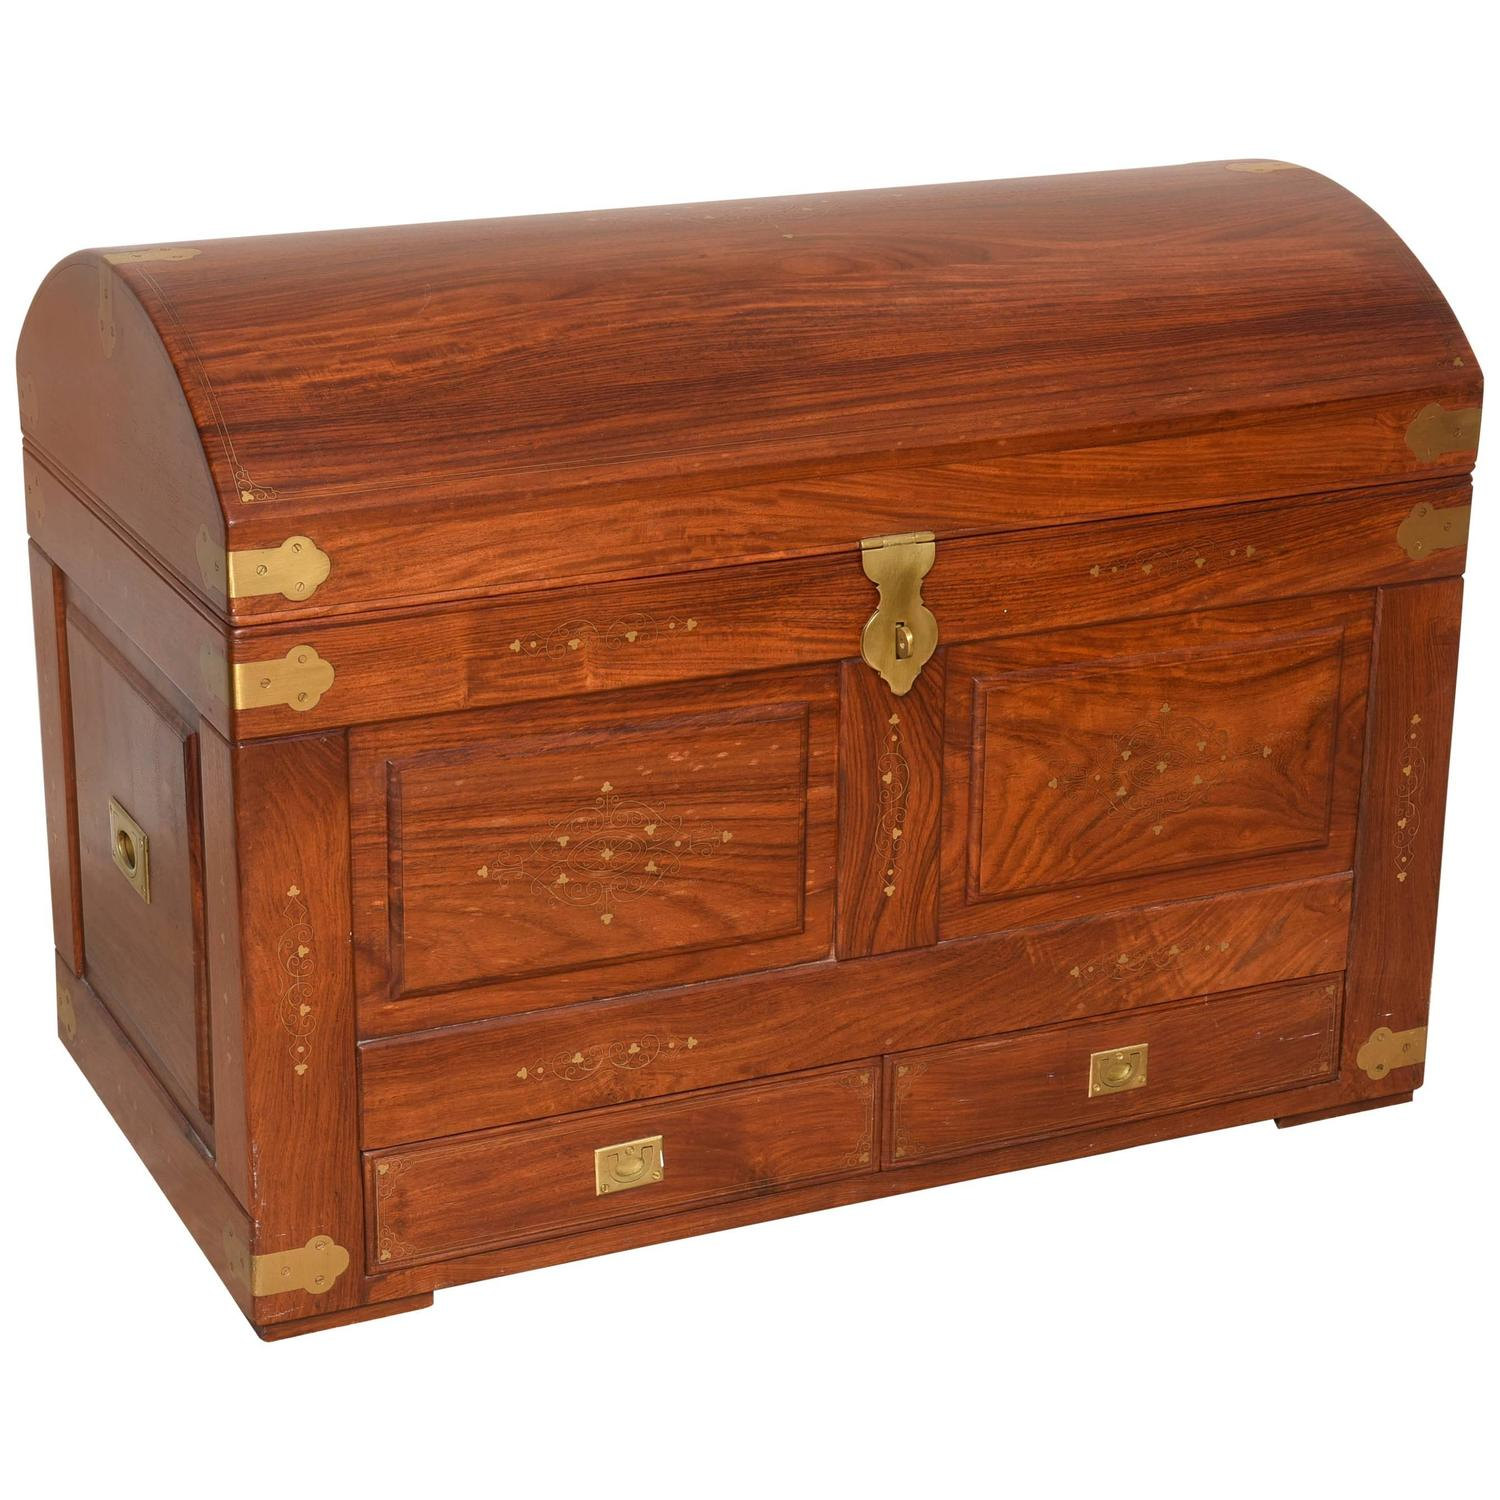 Anglo Indian Domed Camel Back Trunk In Teak Wood With Inset Brass And  Hardware